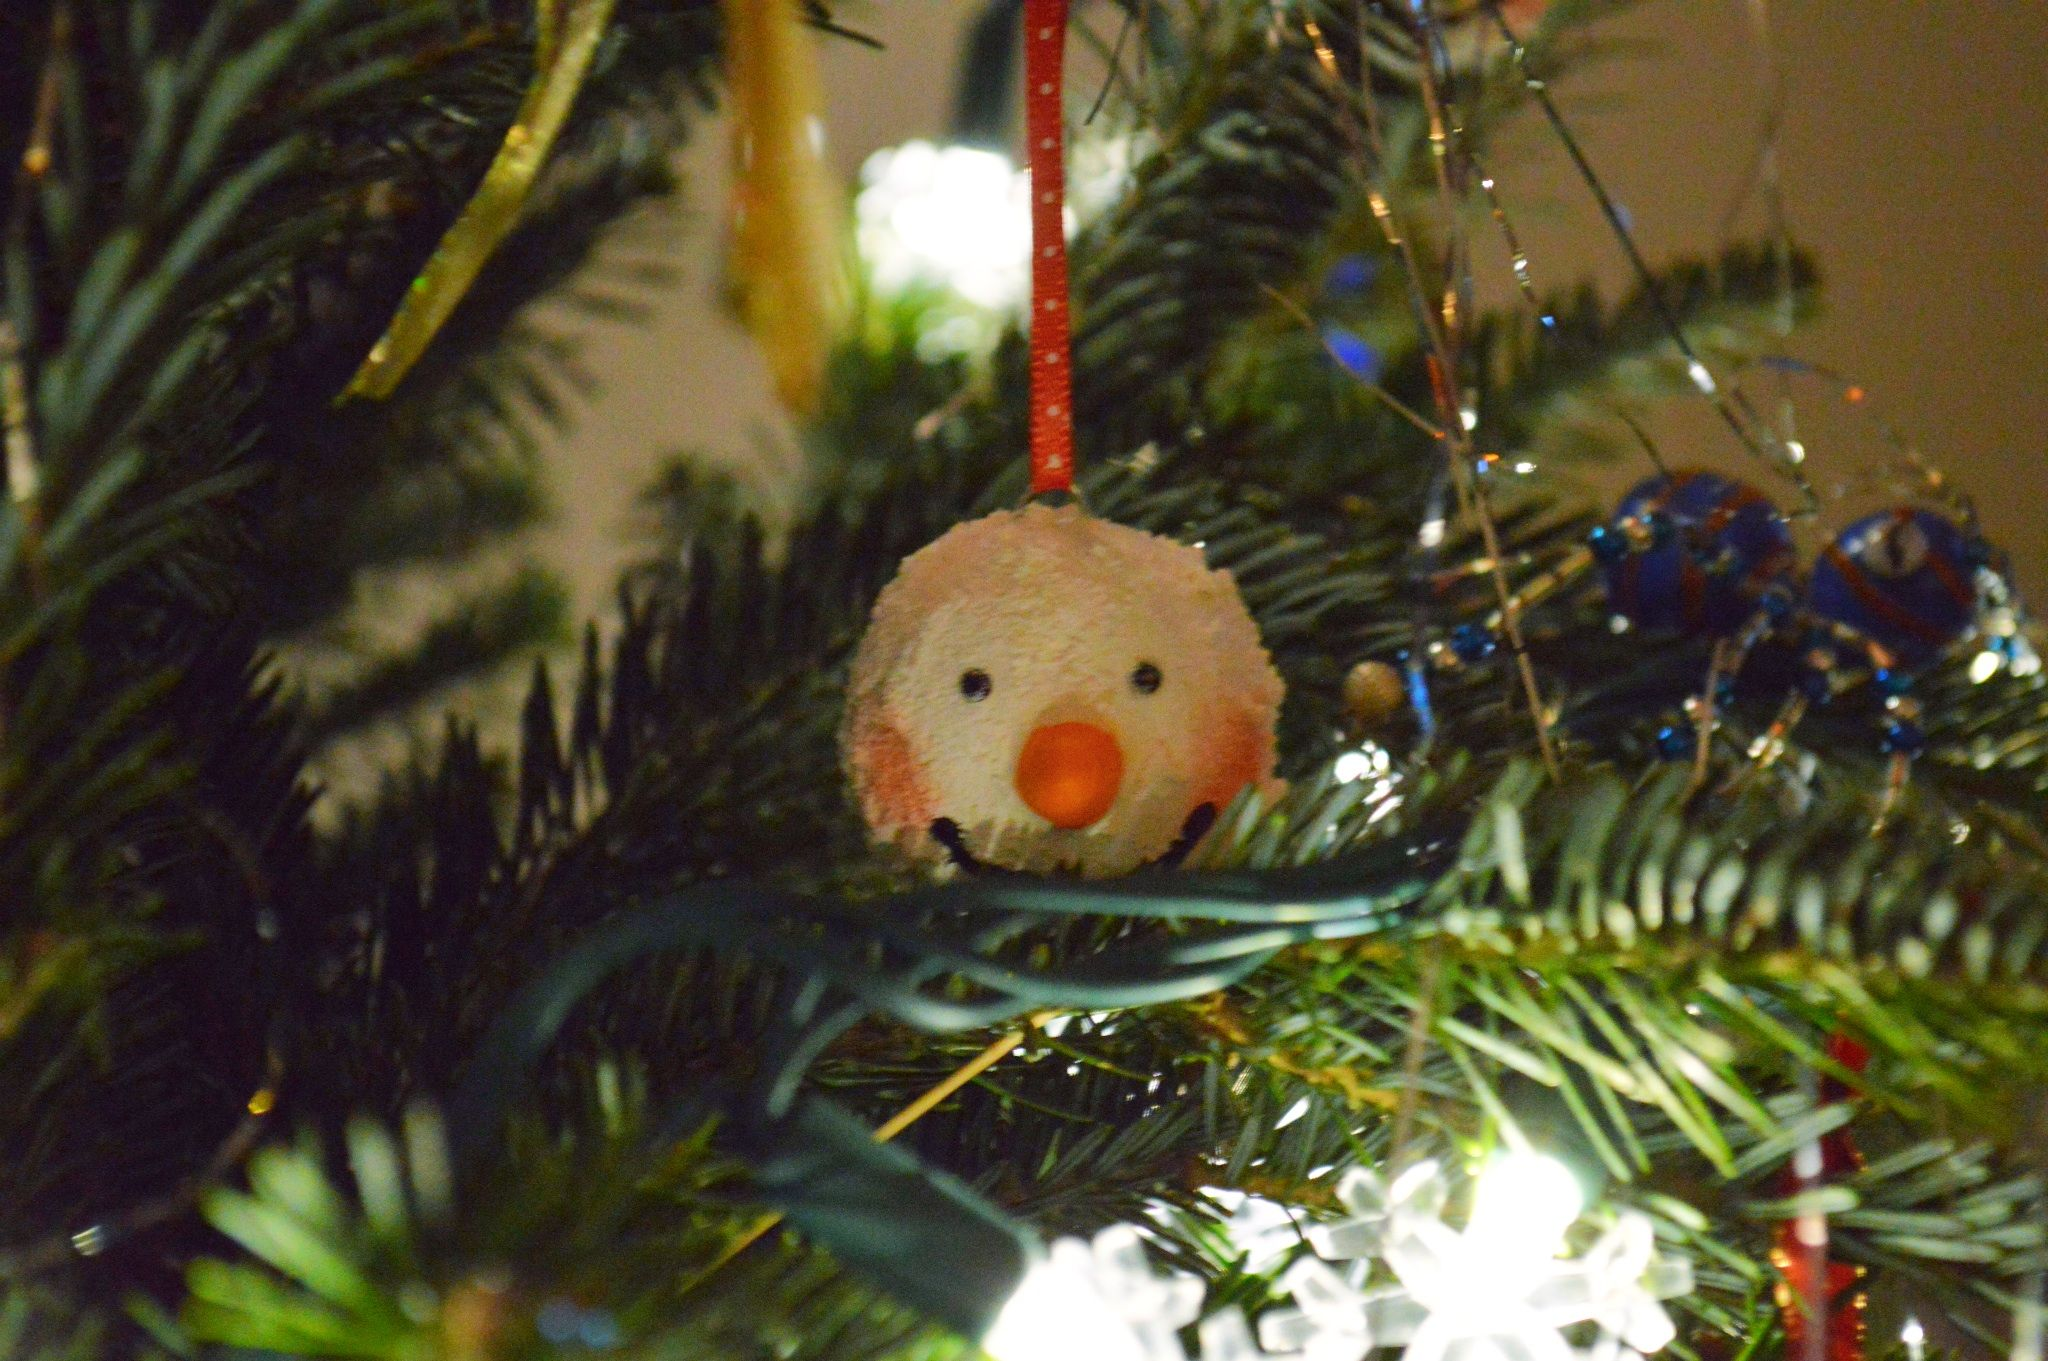 Snowman ball ornament we made this year